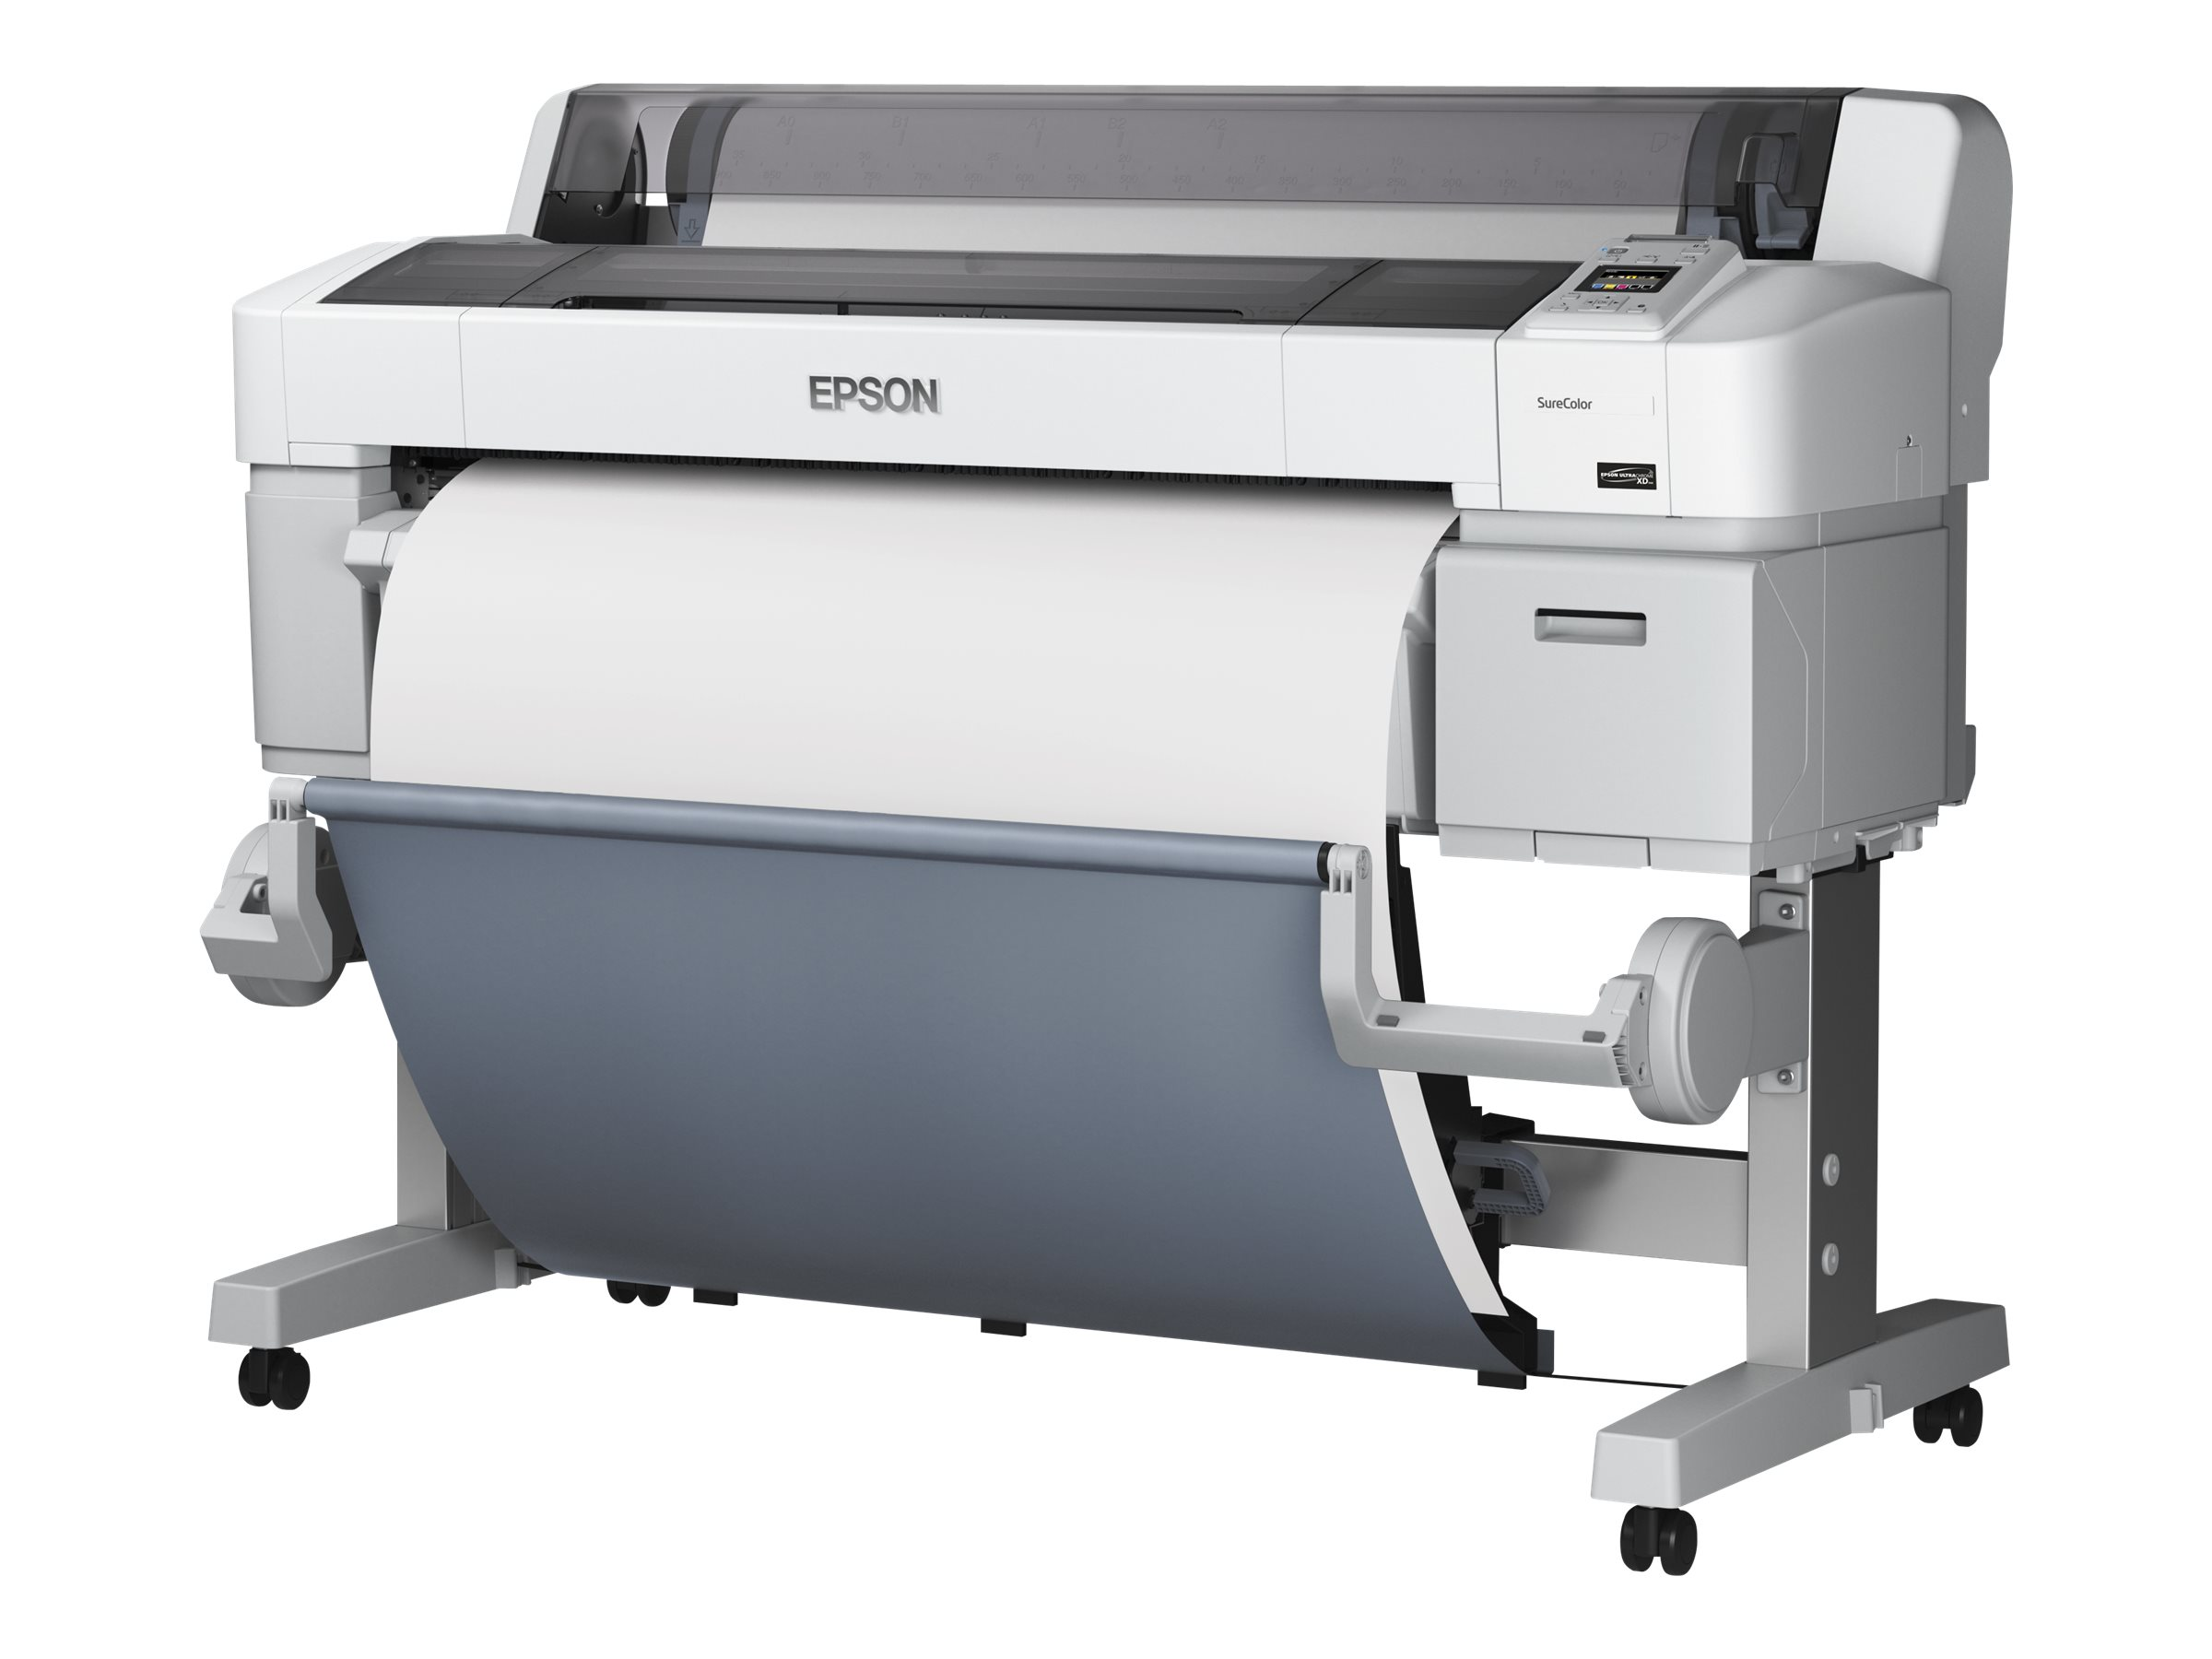 Epson SureColor SC-T5200-PS - 914 mm (36